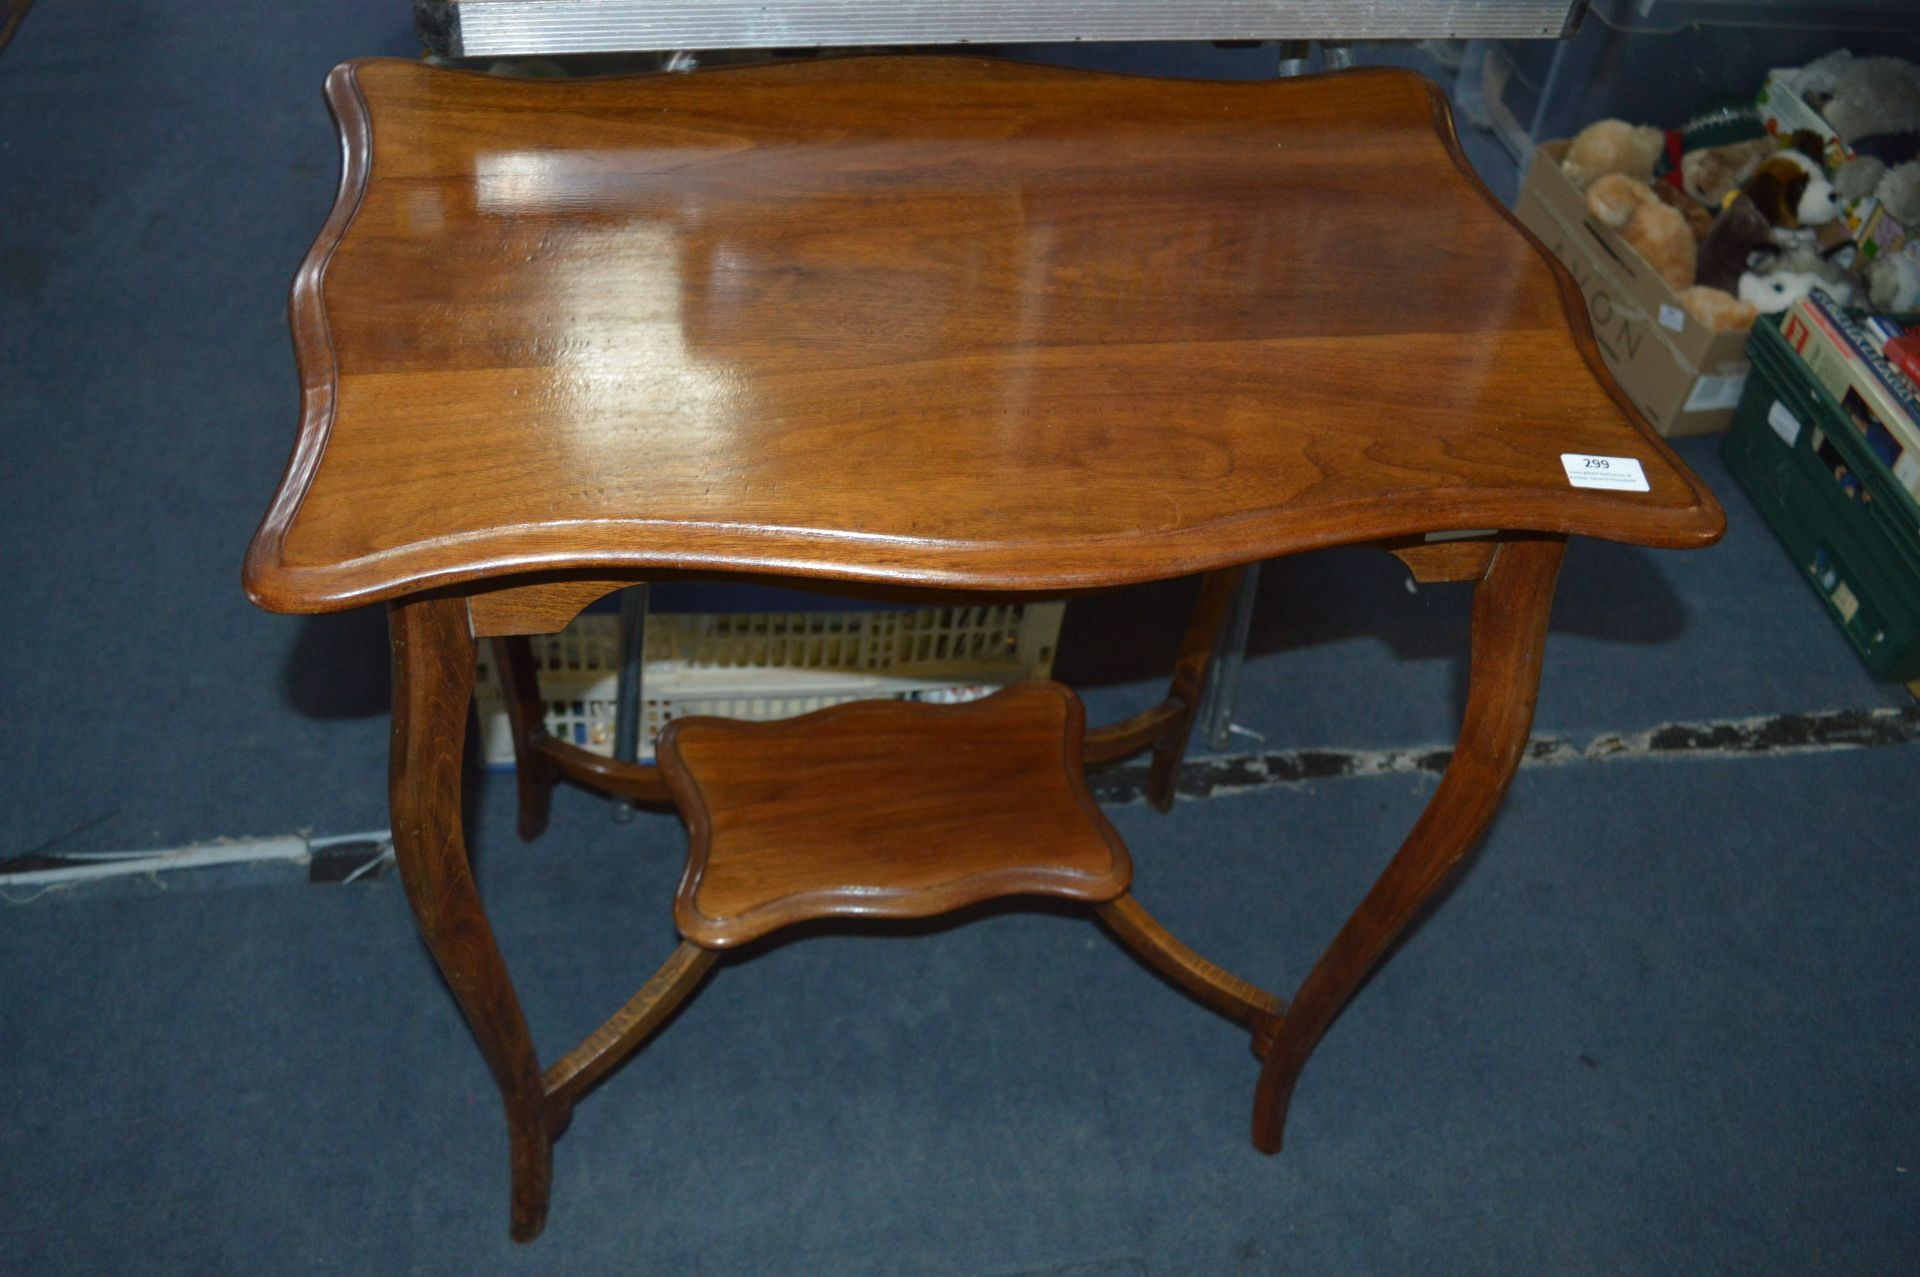 Lot 299 - Small Side Table